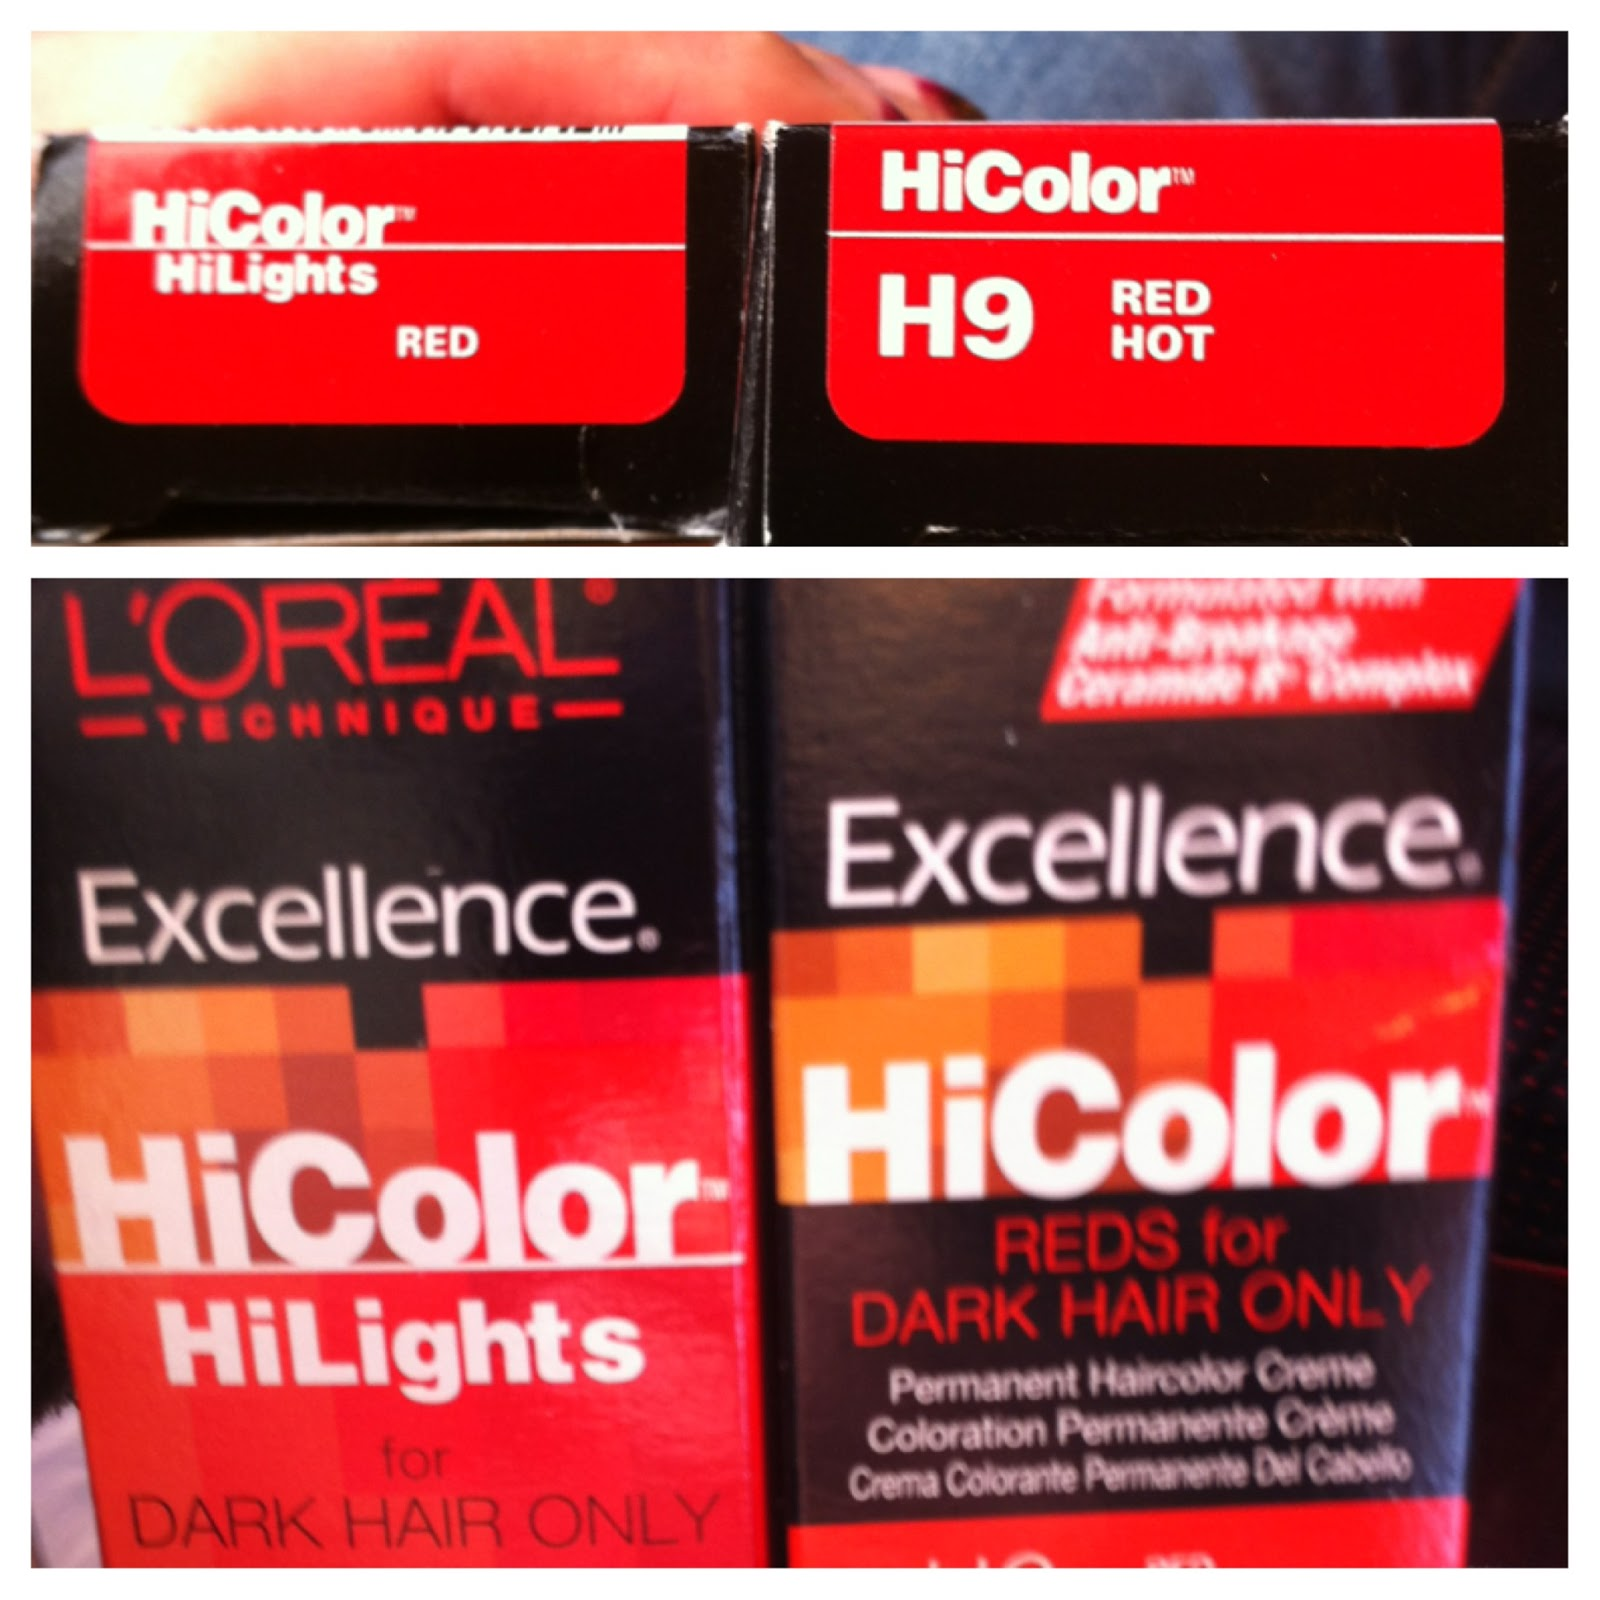 Loreal Excellence Hicolor Highlights Hairstyle Inspirations 2018